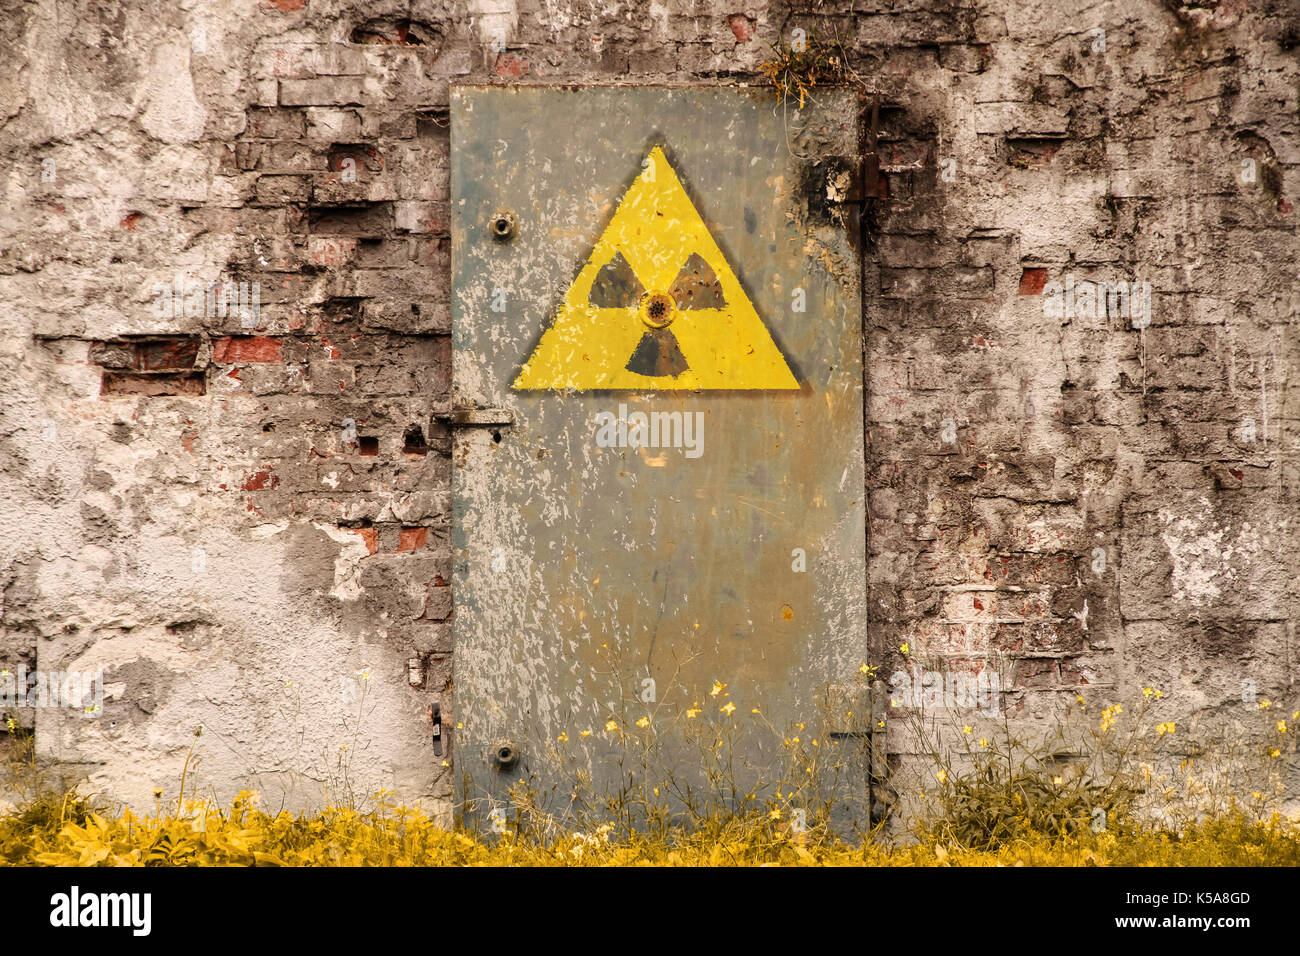 Radioactive Ionizing Radiation Danger Symbol Painted On The Old